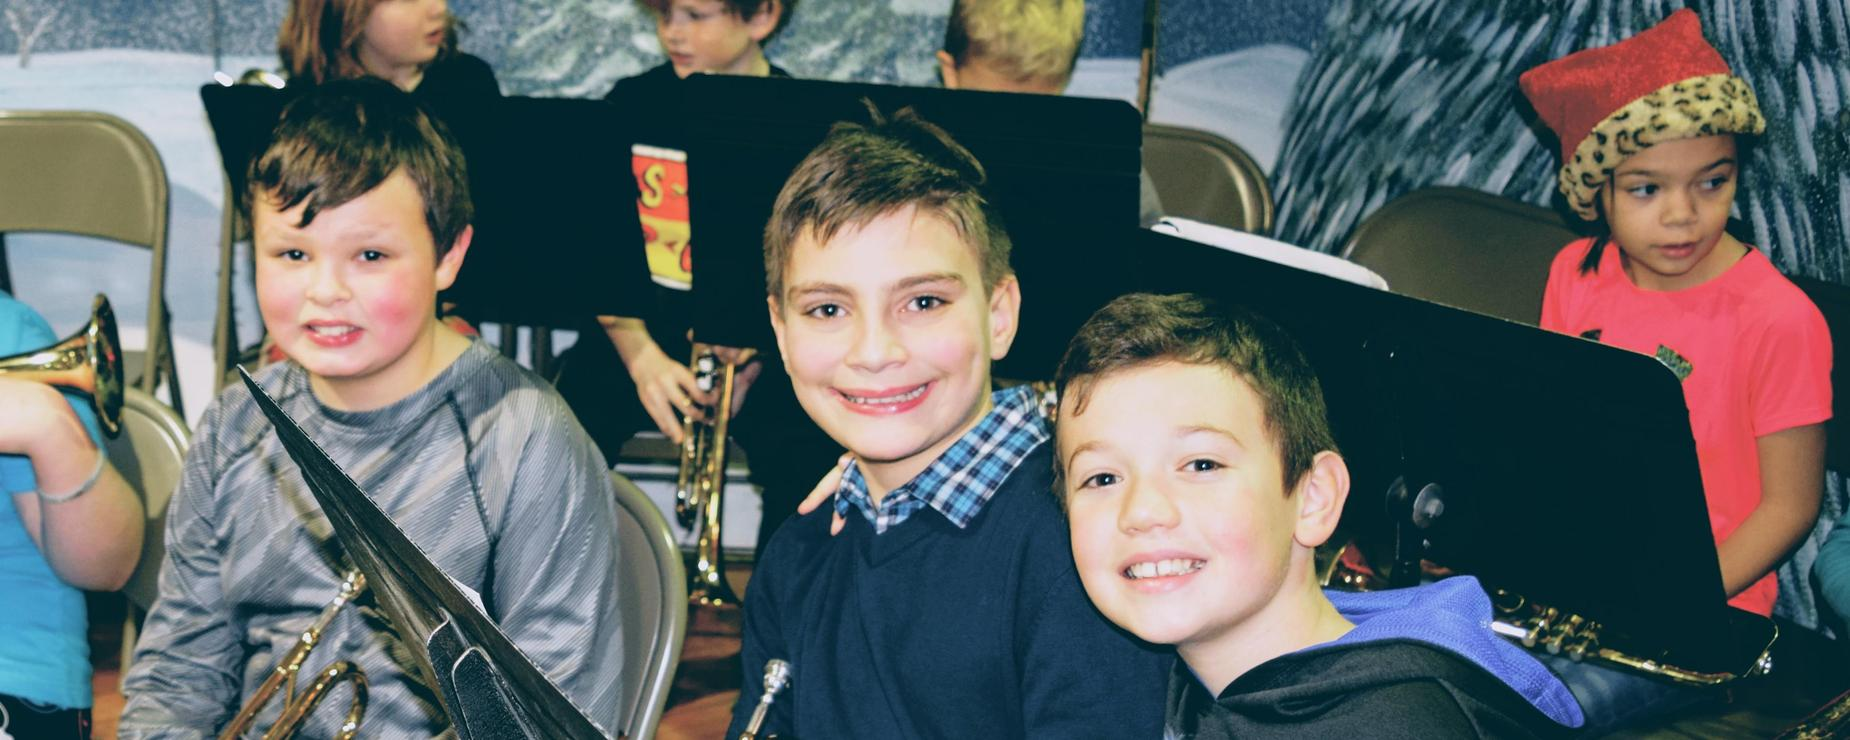 Four Cumberland Head students smile during their Band class